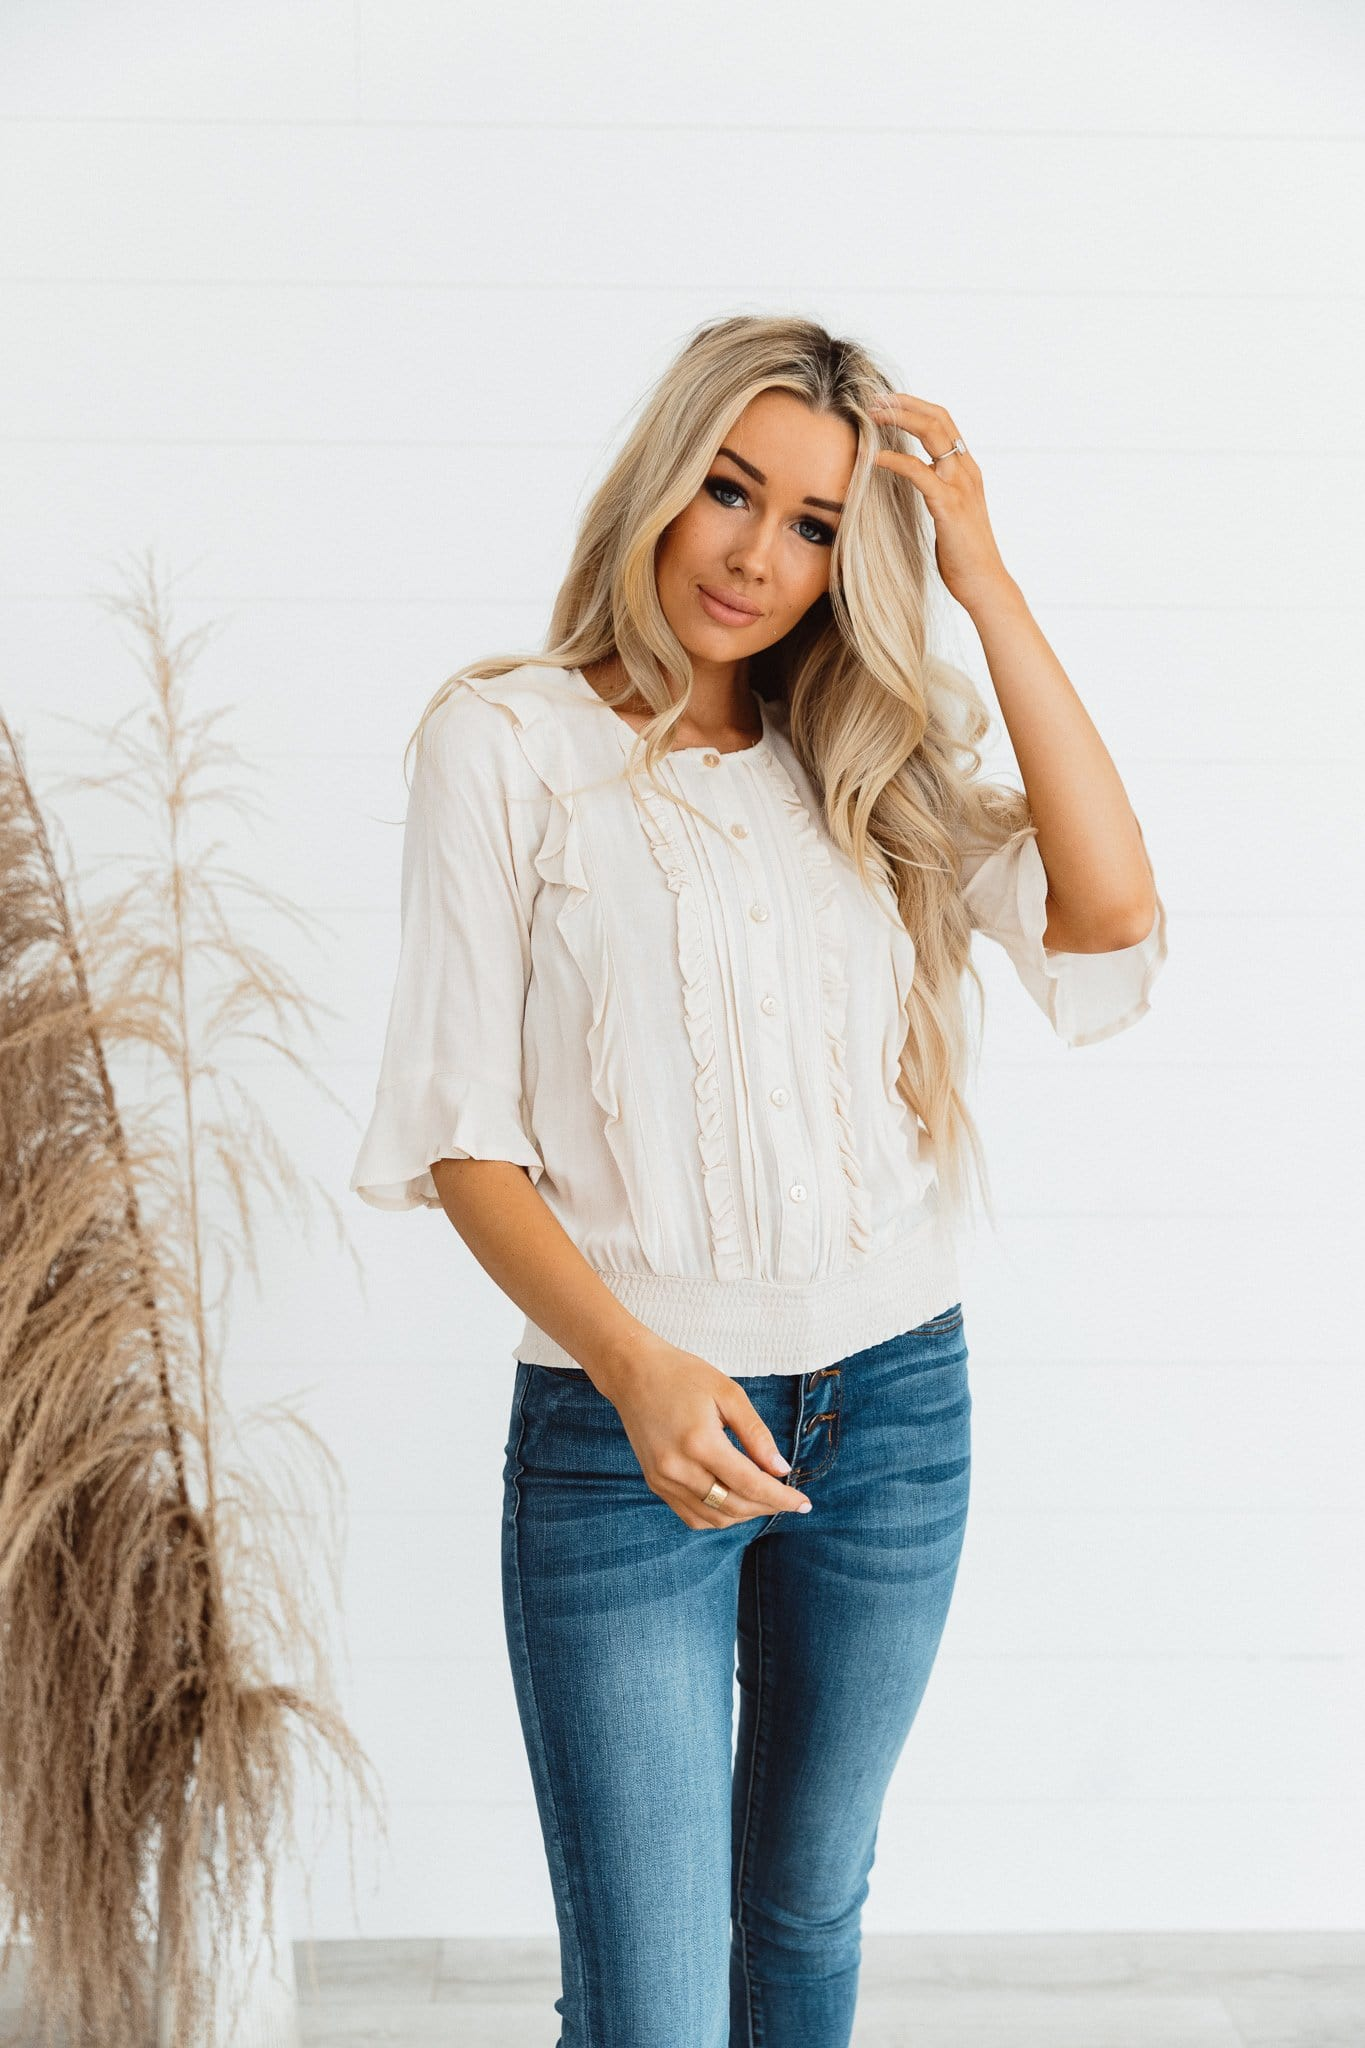 The Maive Ruffle Top in Natural